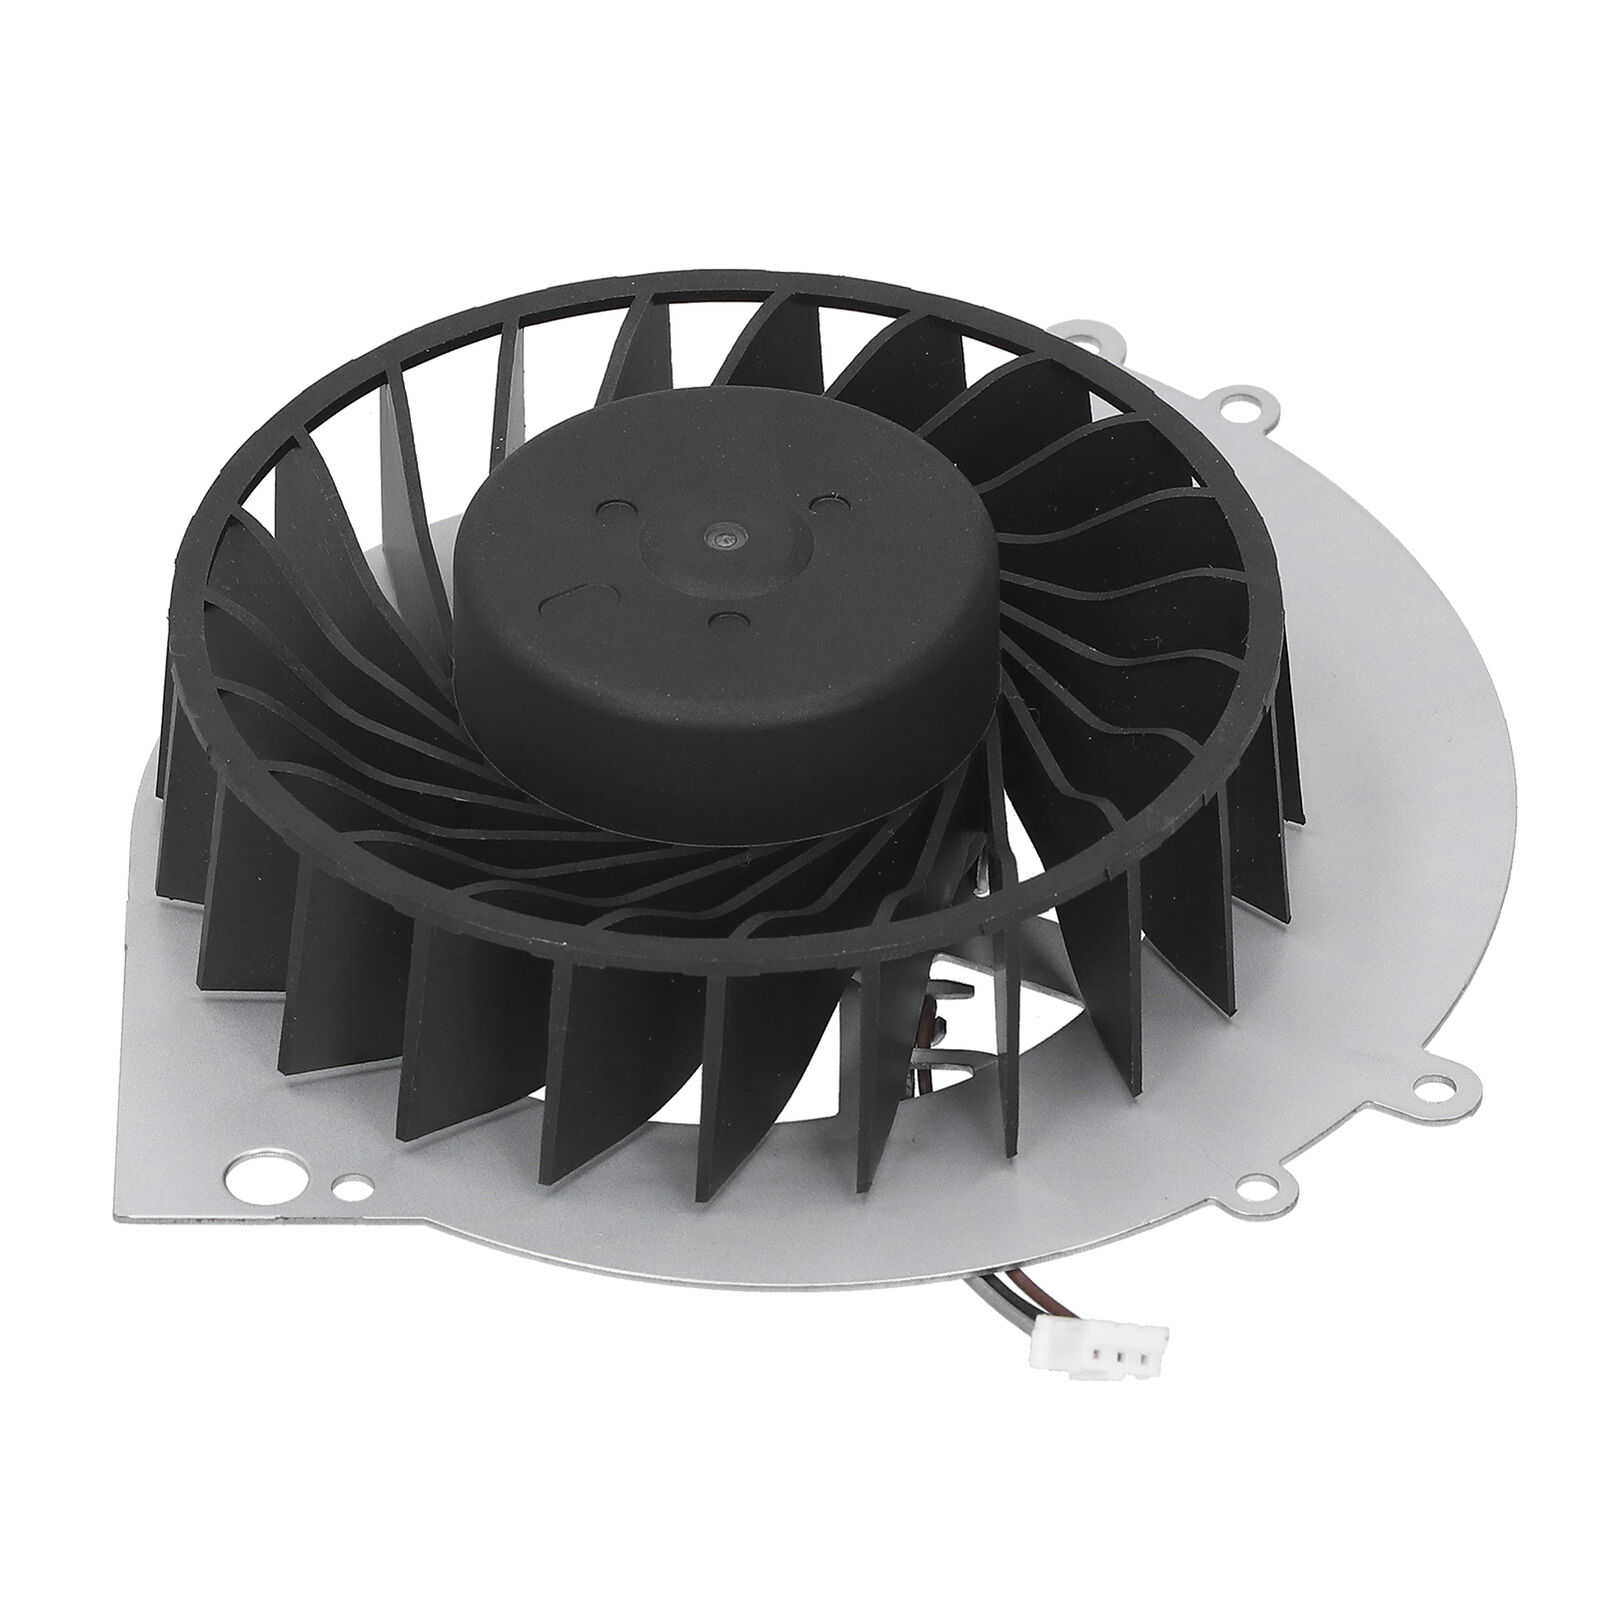 Replacement Metal CPU Cooler Built‑In Cooling Fans for PS4 1200 Console Game